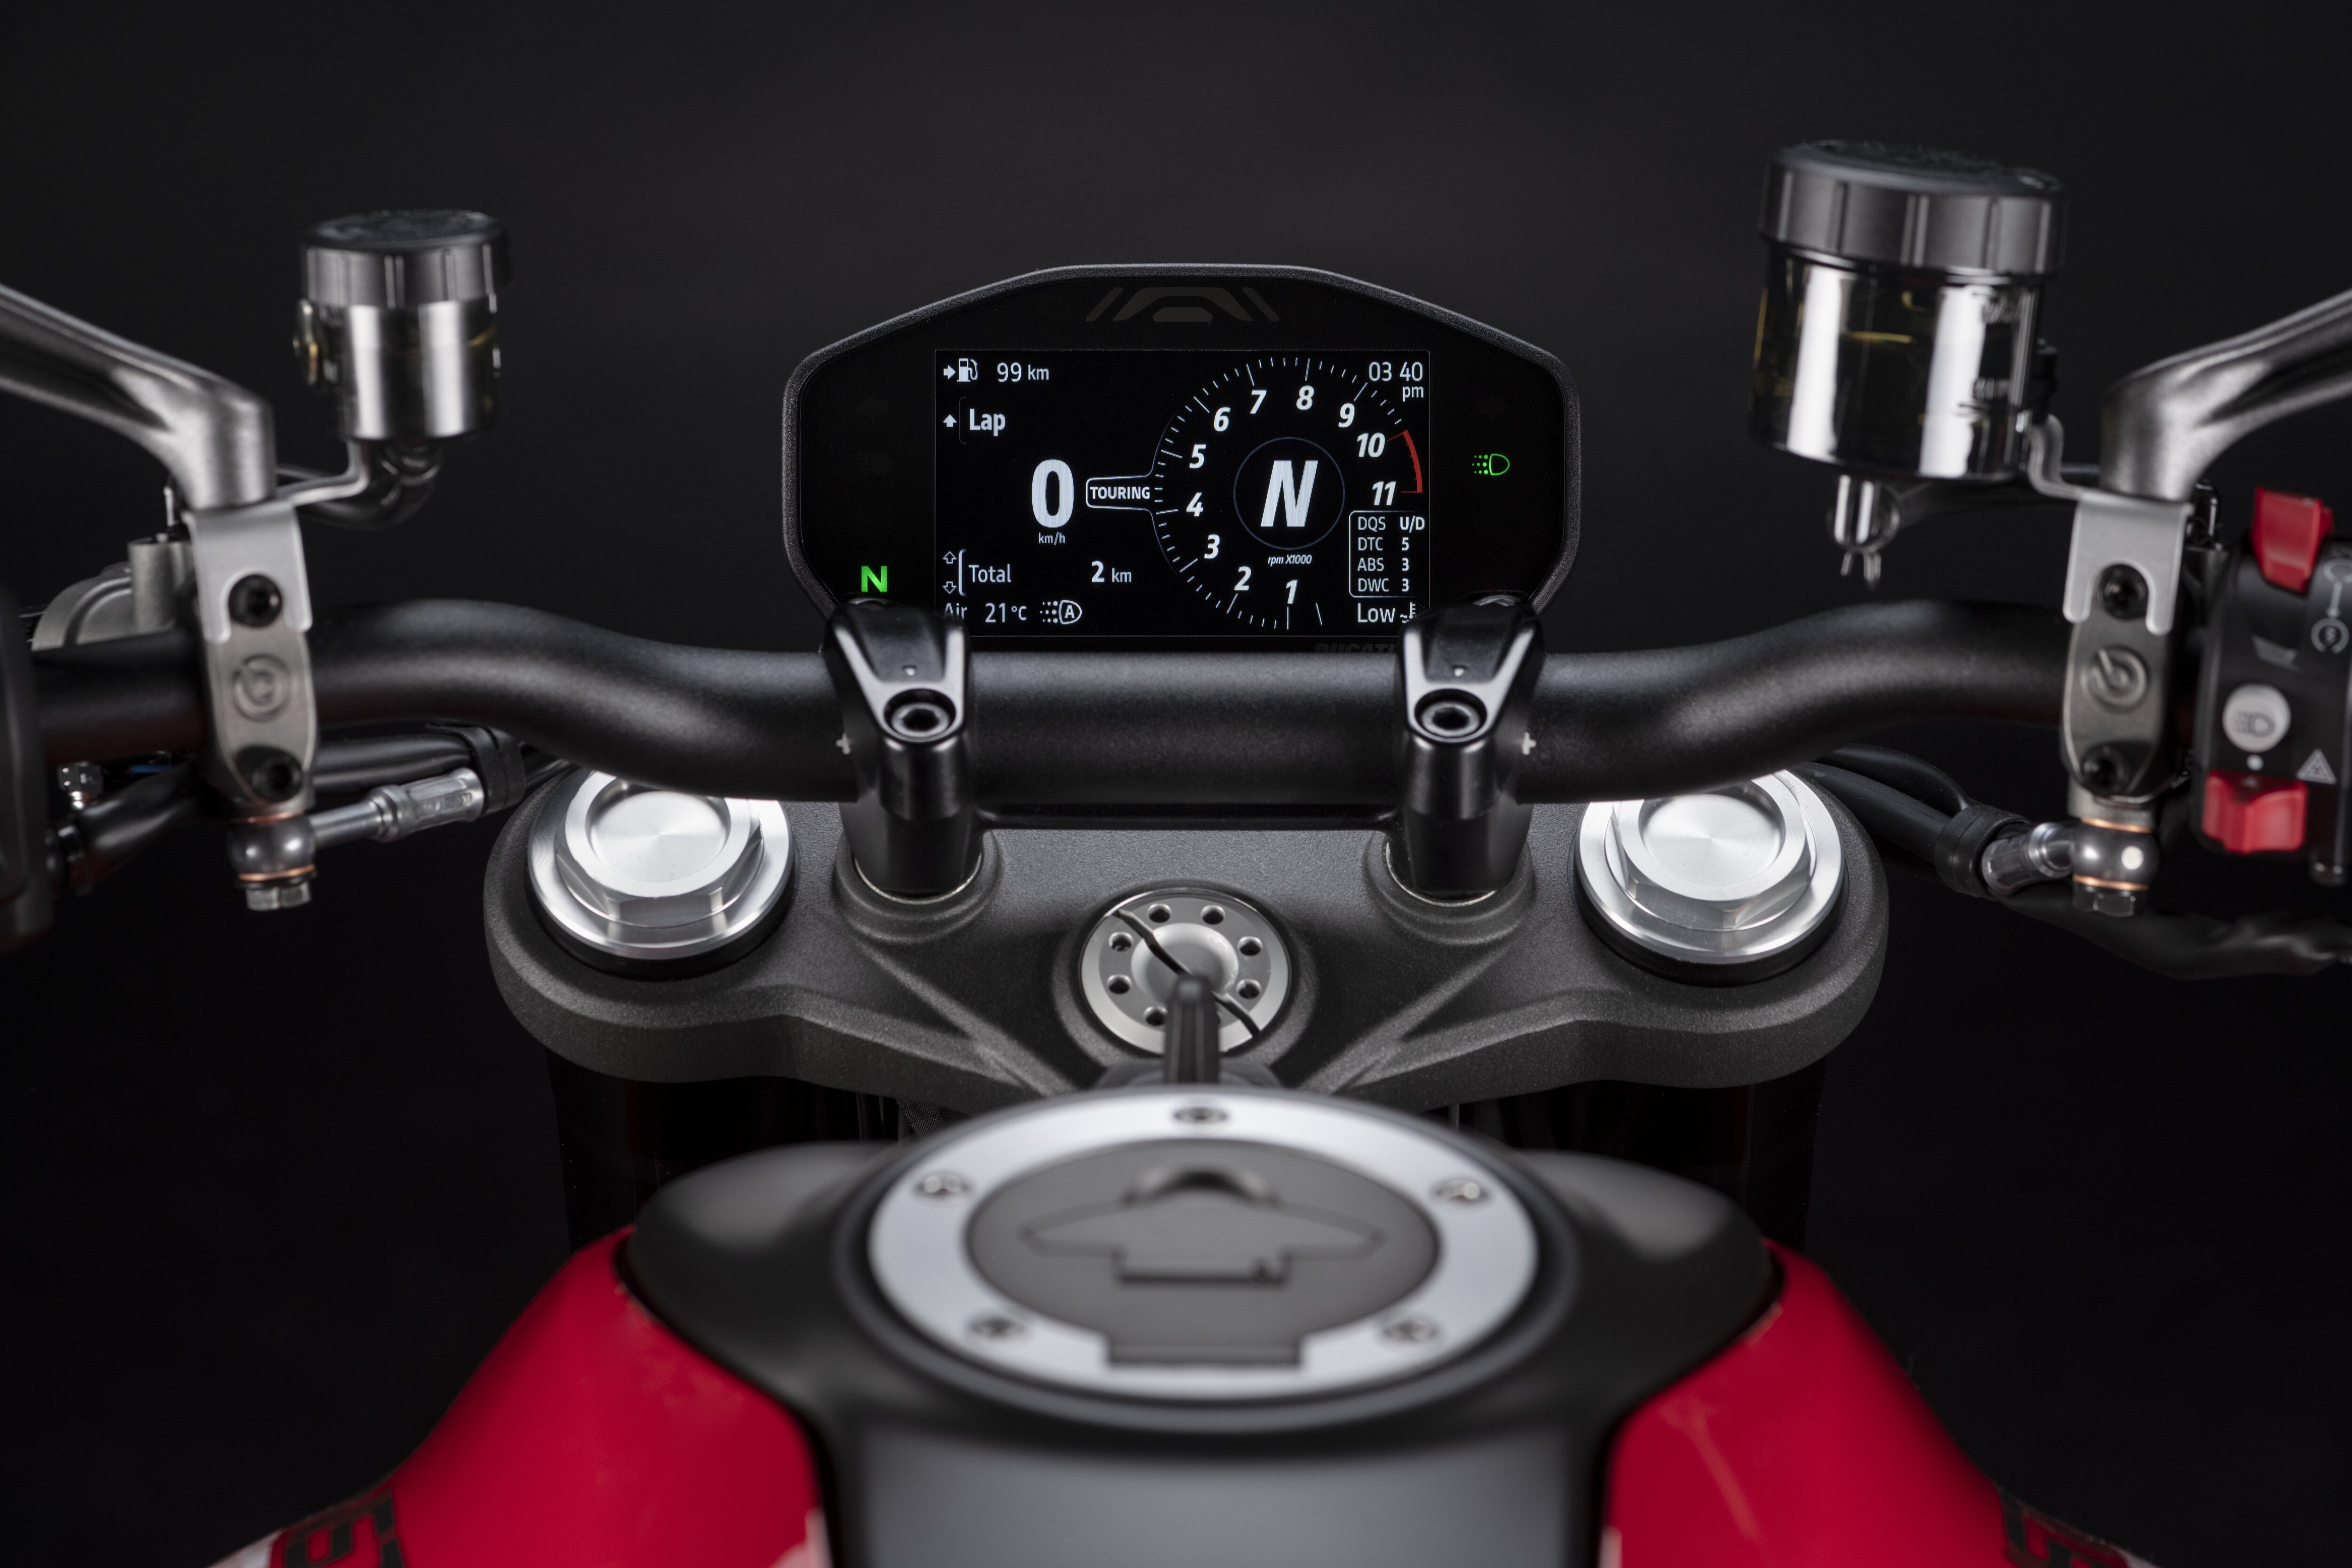 The new Monster is equipped with three Riding Modes (Sport, Urban, Touring). Everything is managed via the handlebar controls and the bike now features a new 4.3